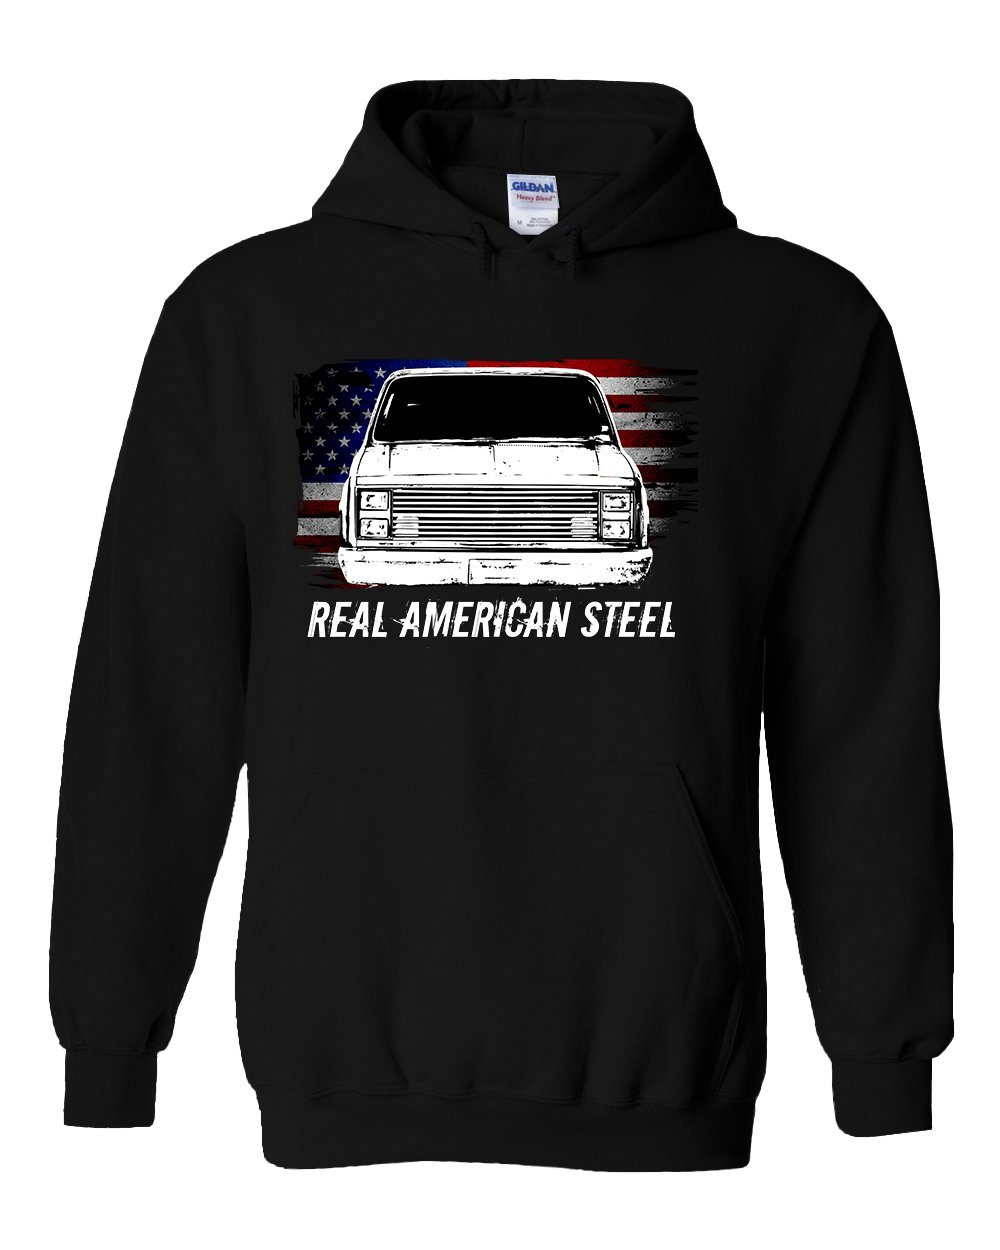 This Square Body Chevy GMC 80's Truck Hoodie is perfect for Crew Cab Squarebody K20 or K30 enthusiasts!